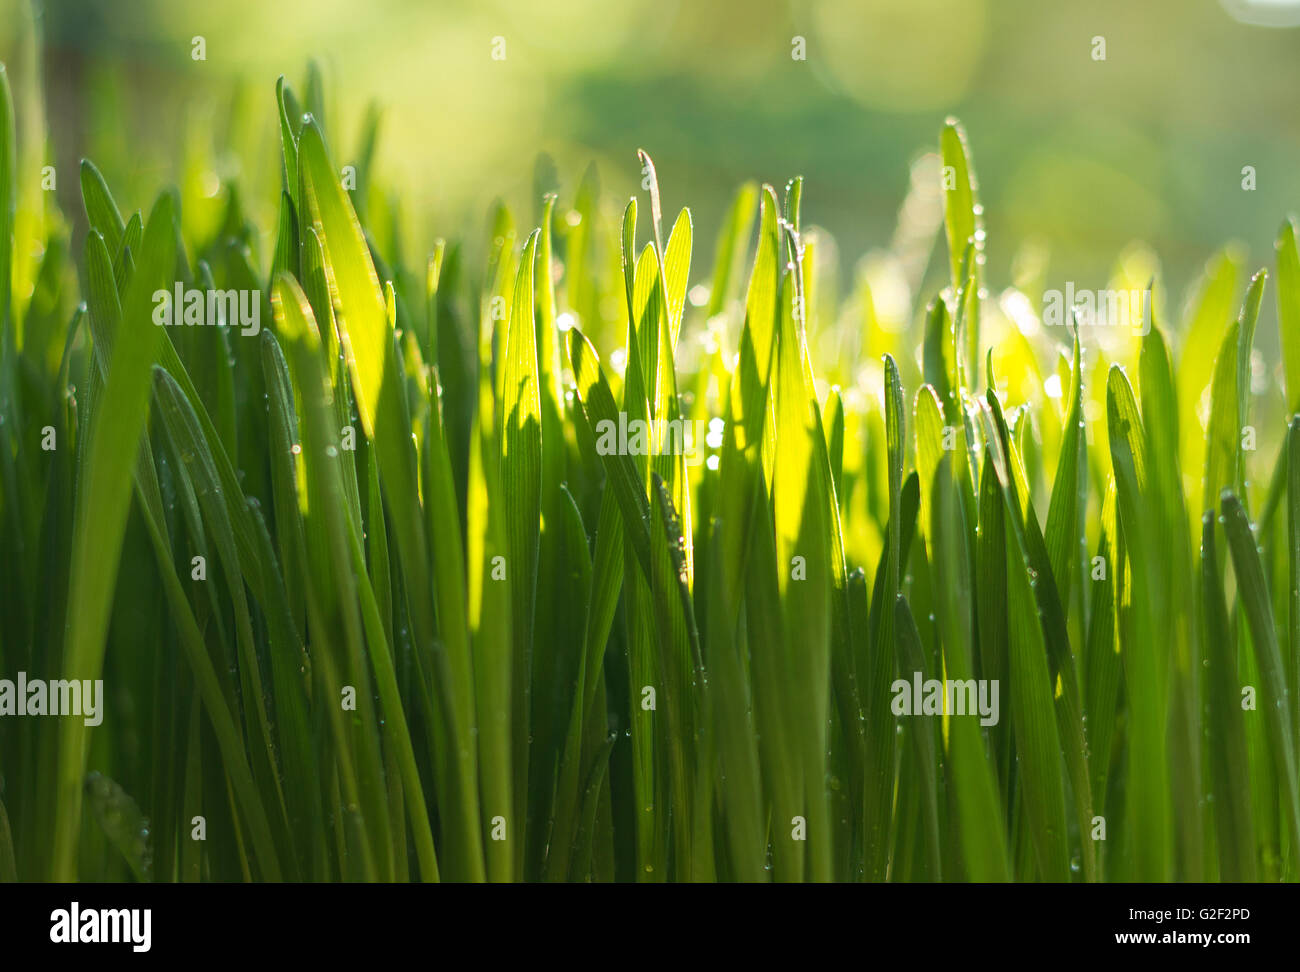 Freshly grown Wheat grass - Stock Image